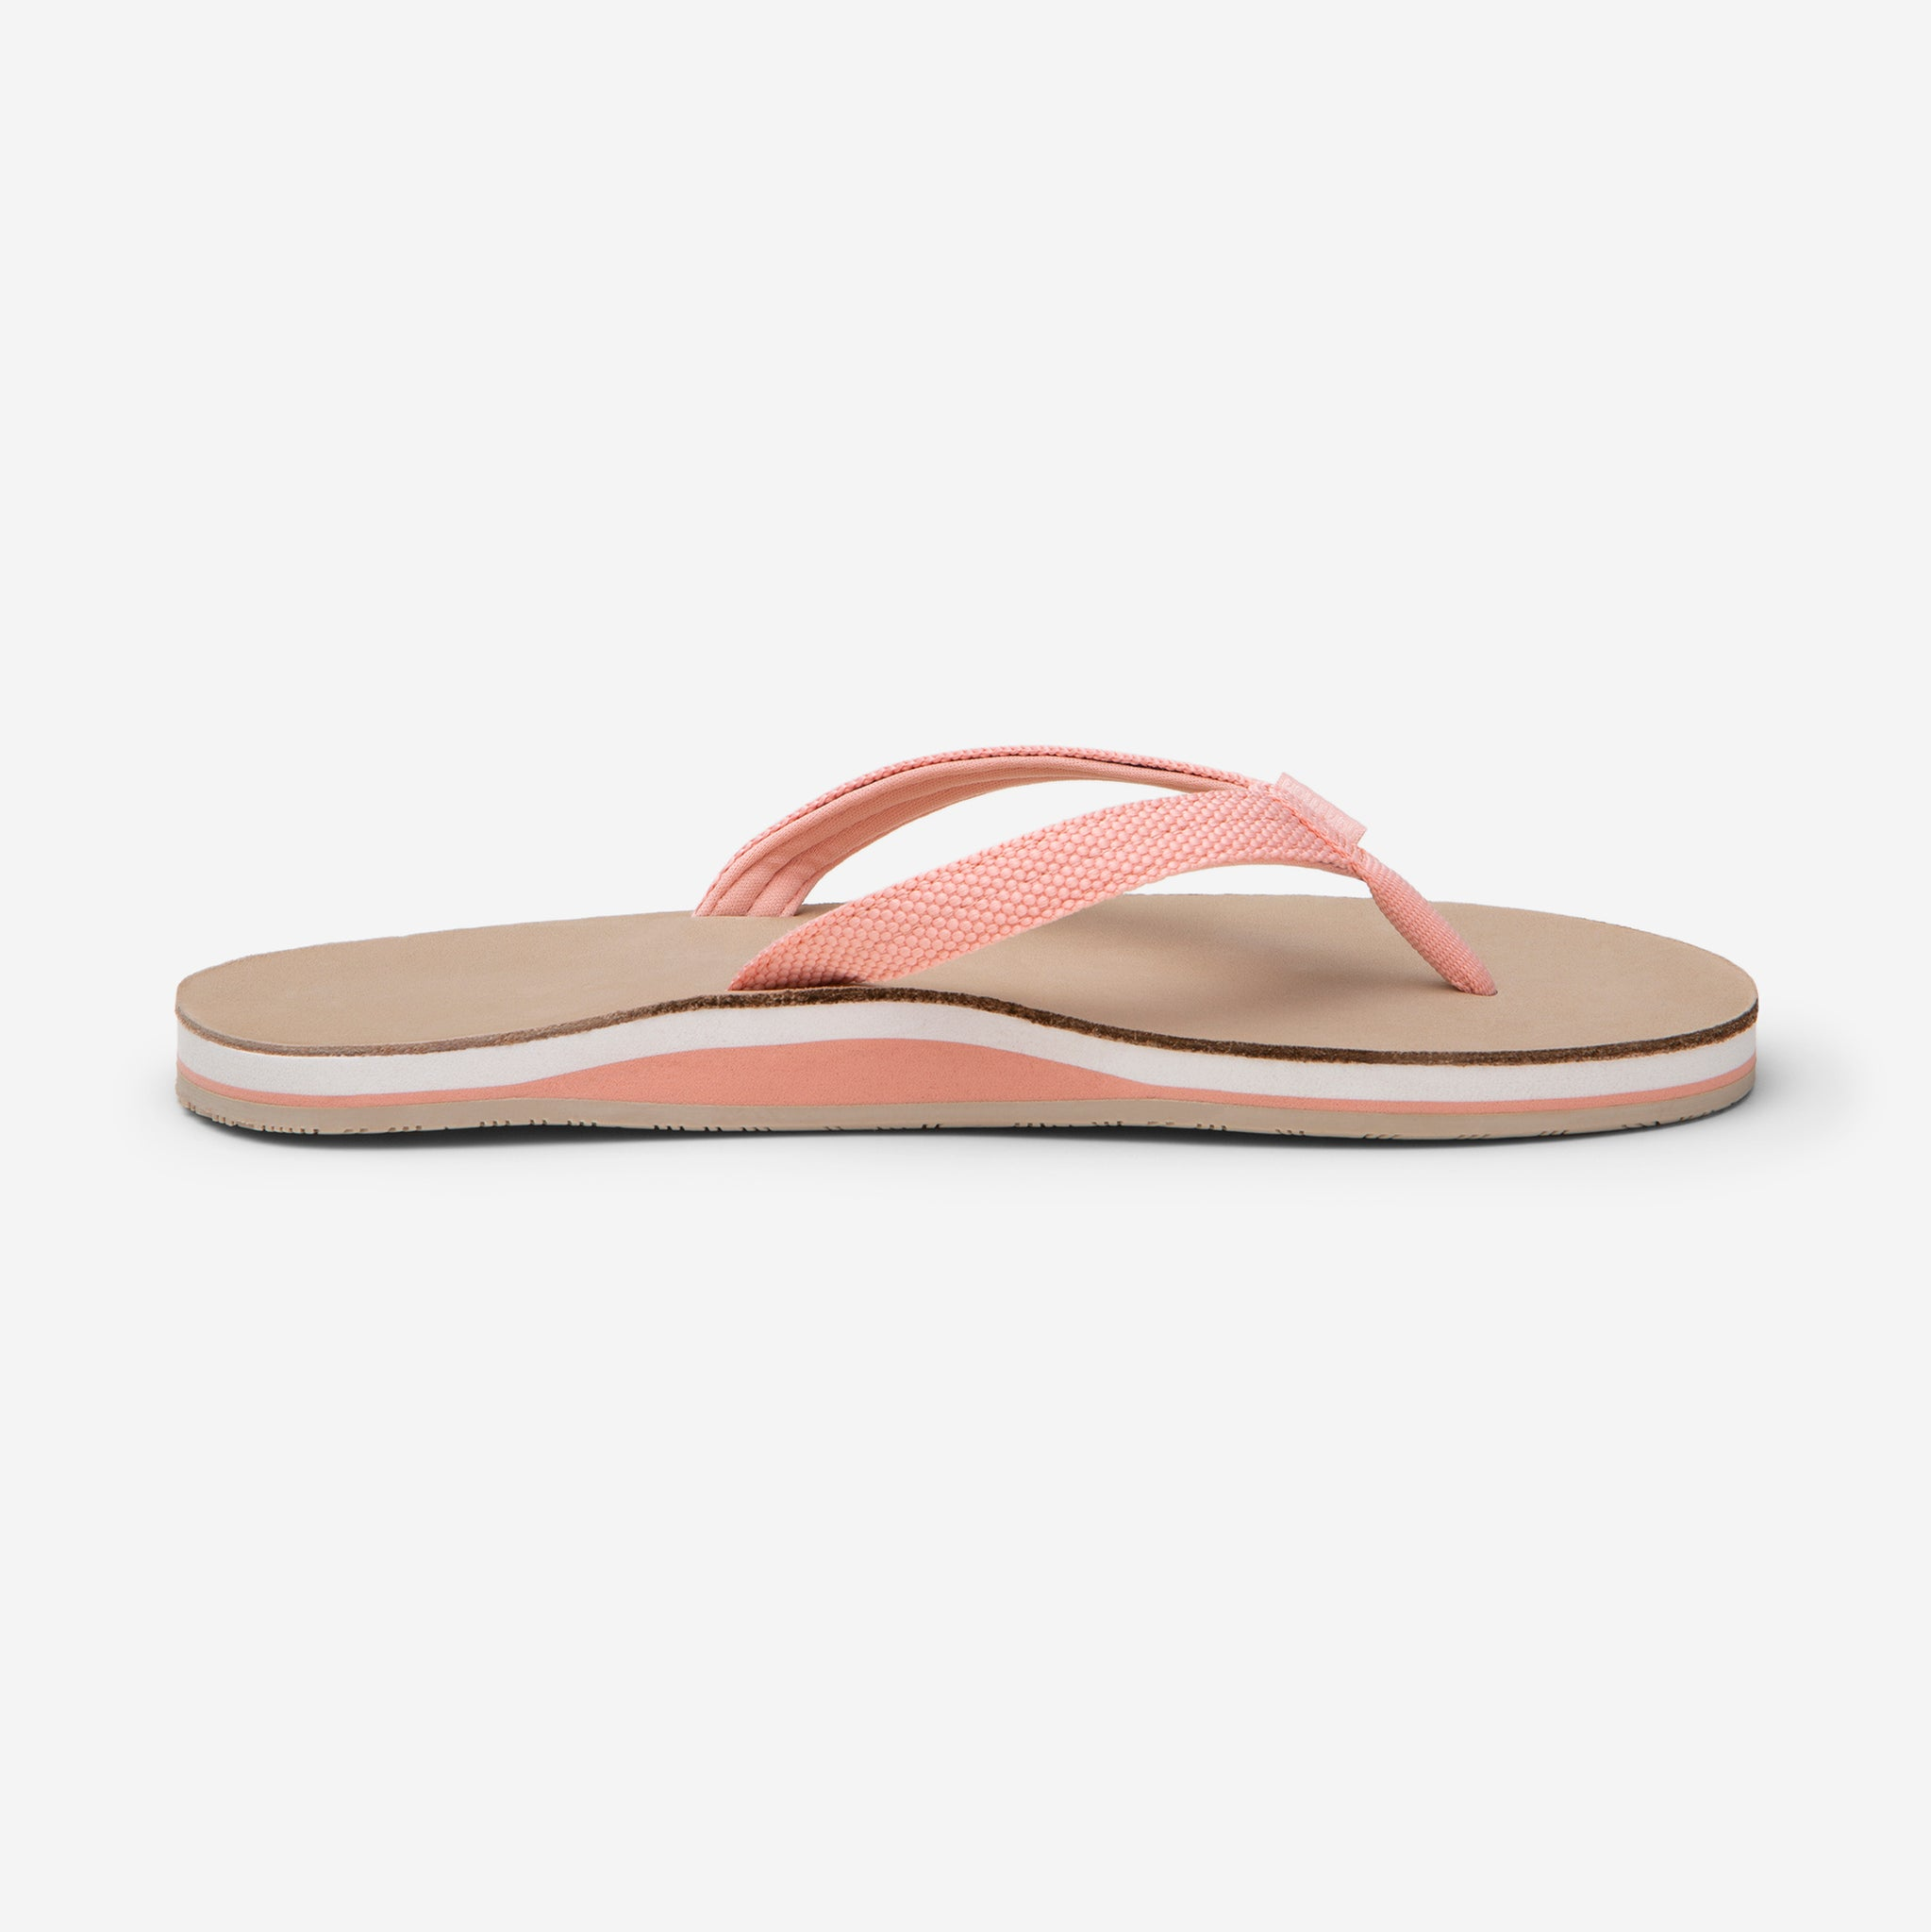 side profile of Hari Mari Women's scouts flip flops in coral pink/sand on white background